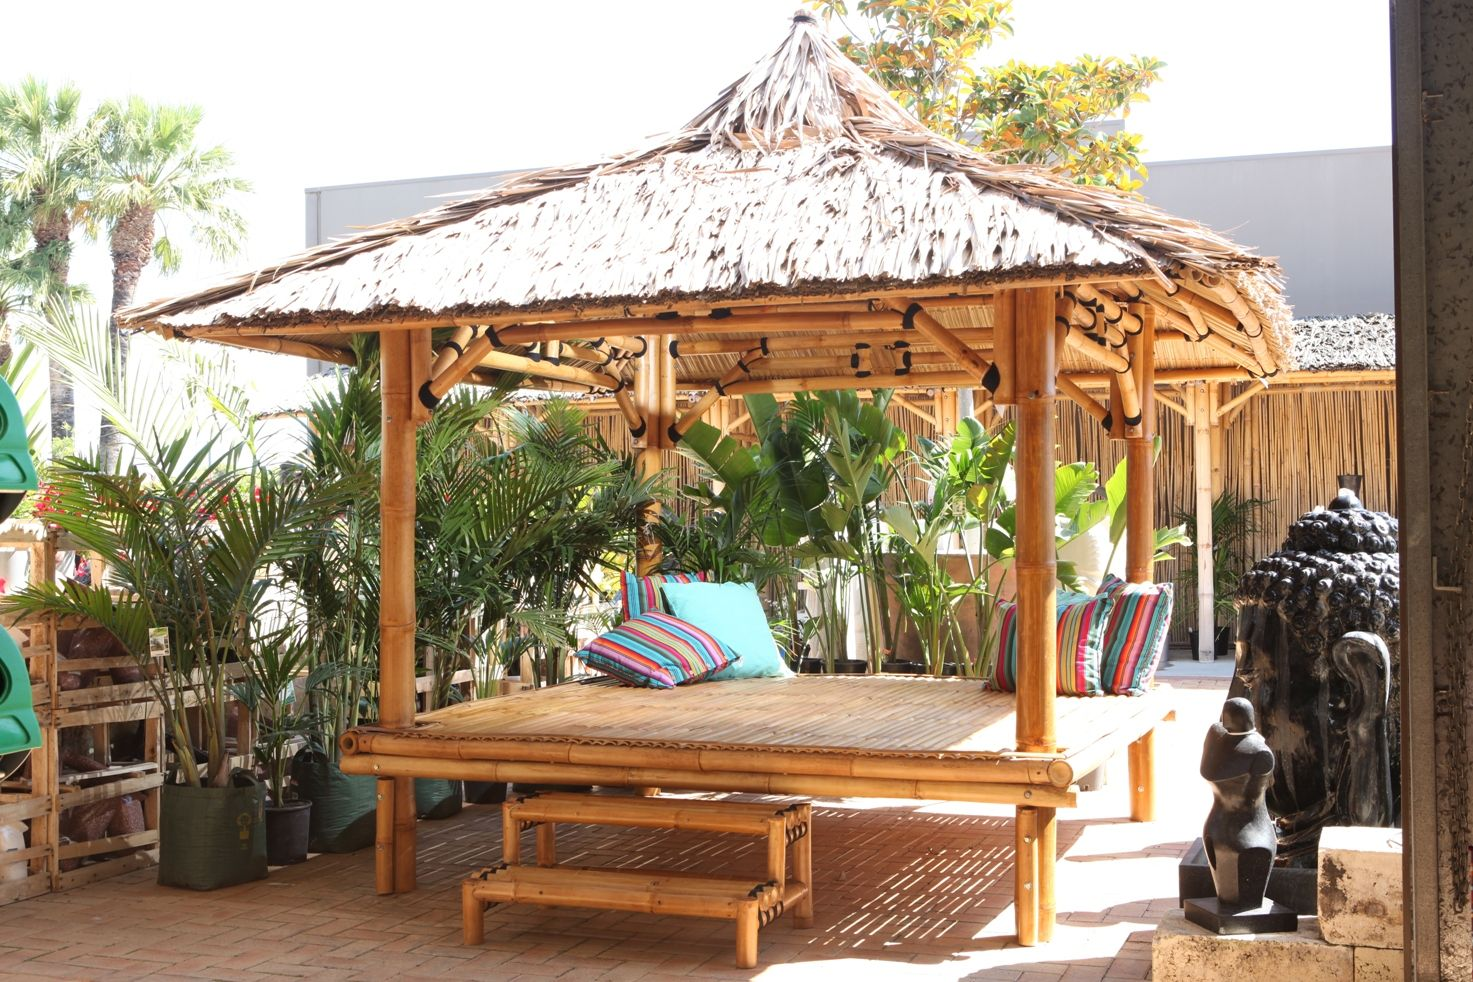 Bamboo Gazebo 2 5 X 2 5 With Floor Thatch Roof Other Sizes Available Drovers Gazebo Bali Huts Buy Gazebo